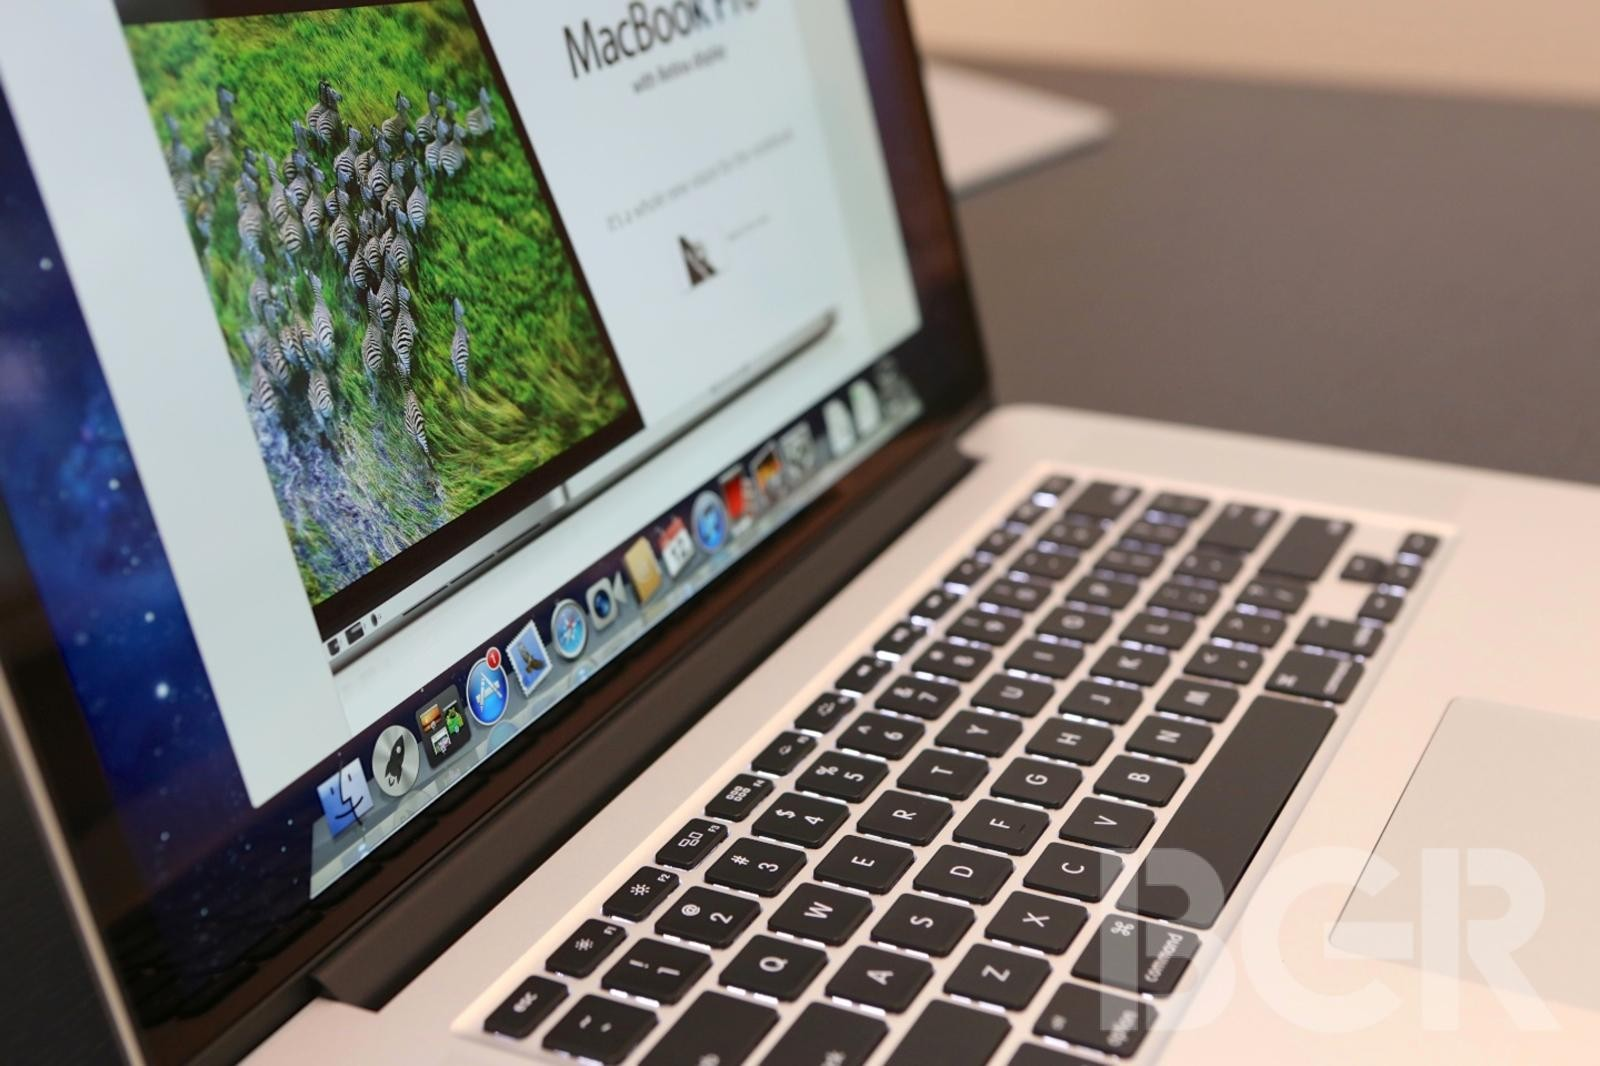 Download Now: Apple Releases Fix for Mac Security Bug